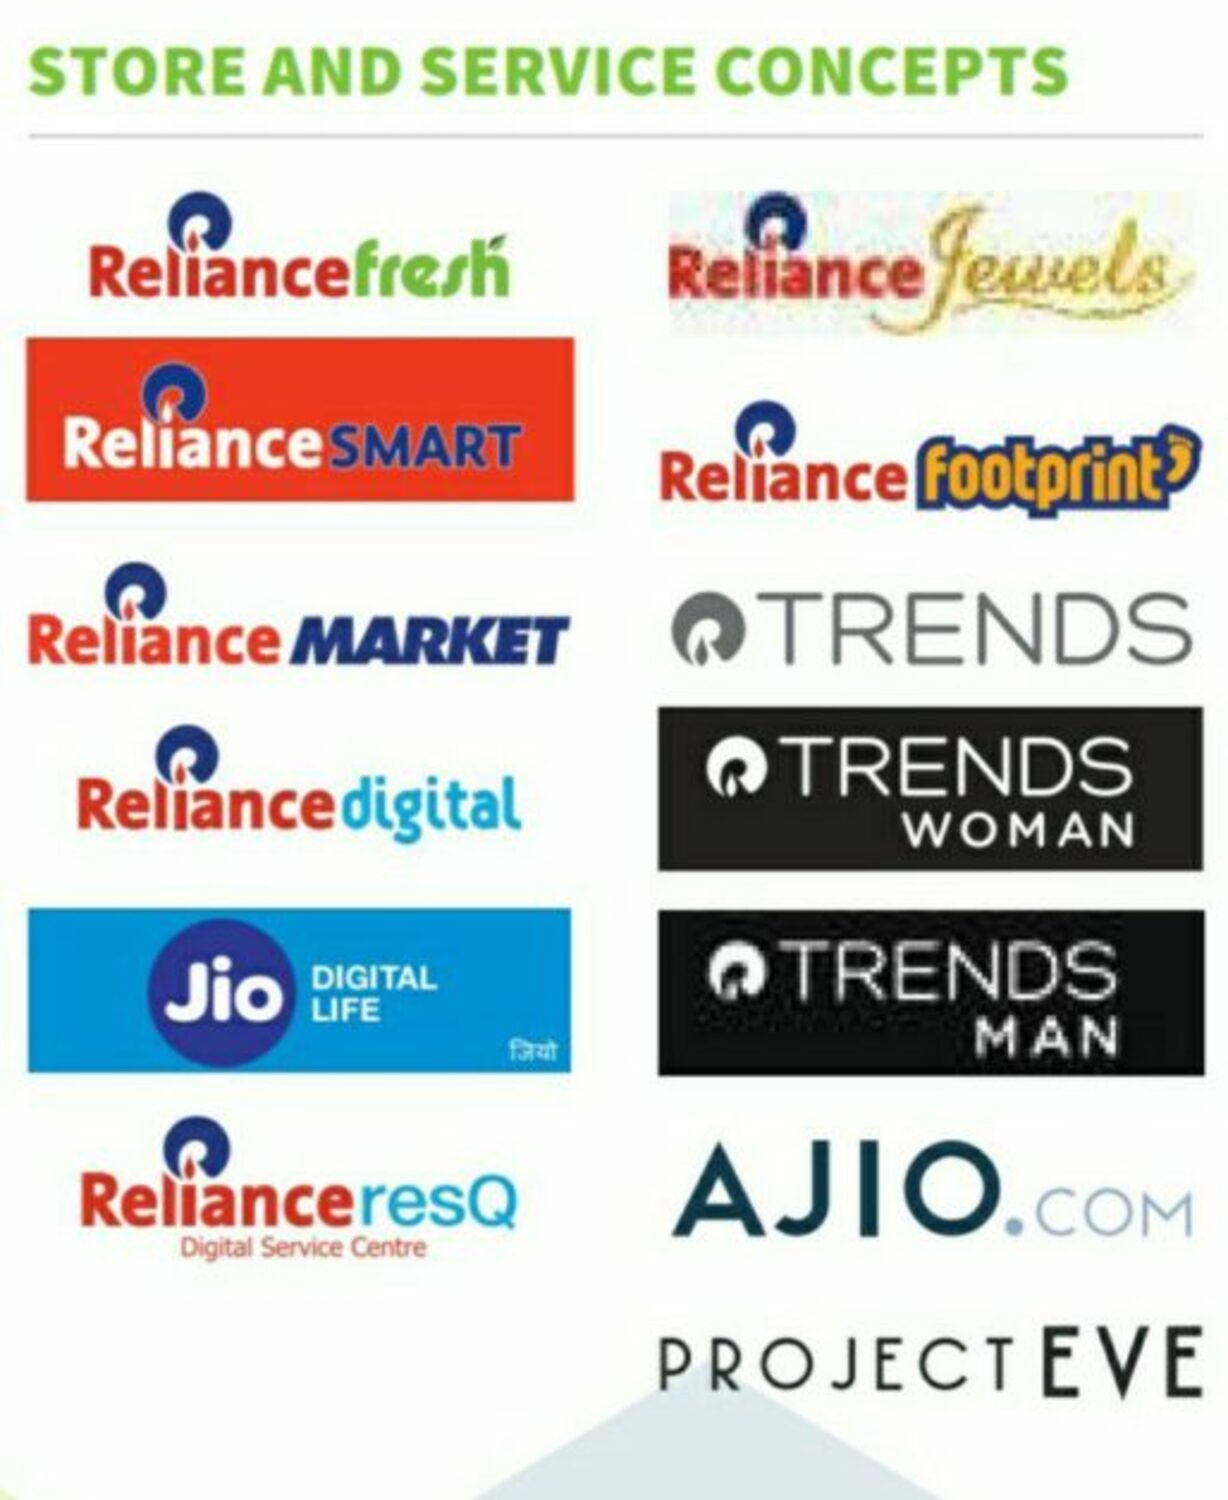 Reliance Footprint  Reliance Jewels  Reliance Smart  Reliance Market